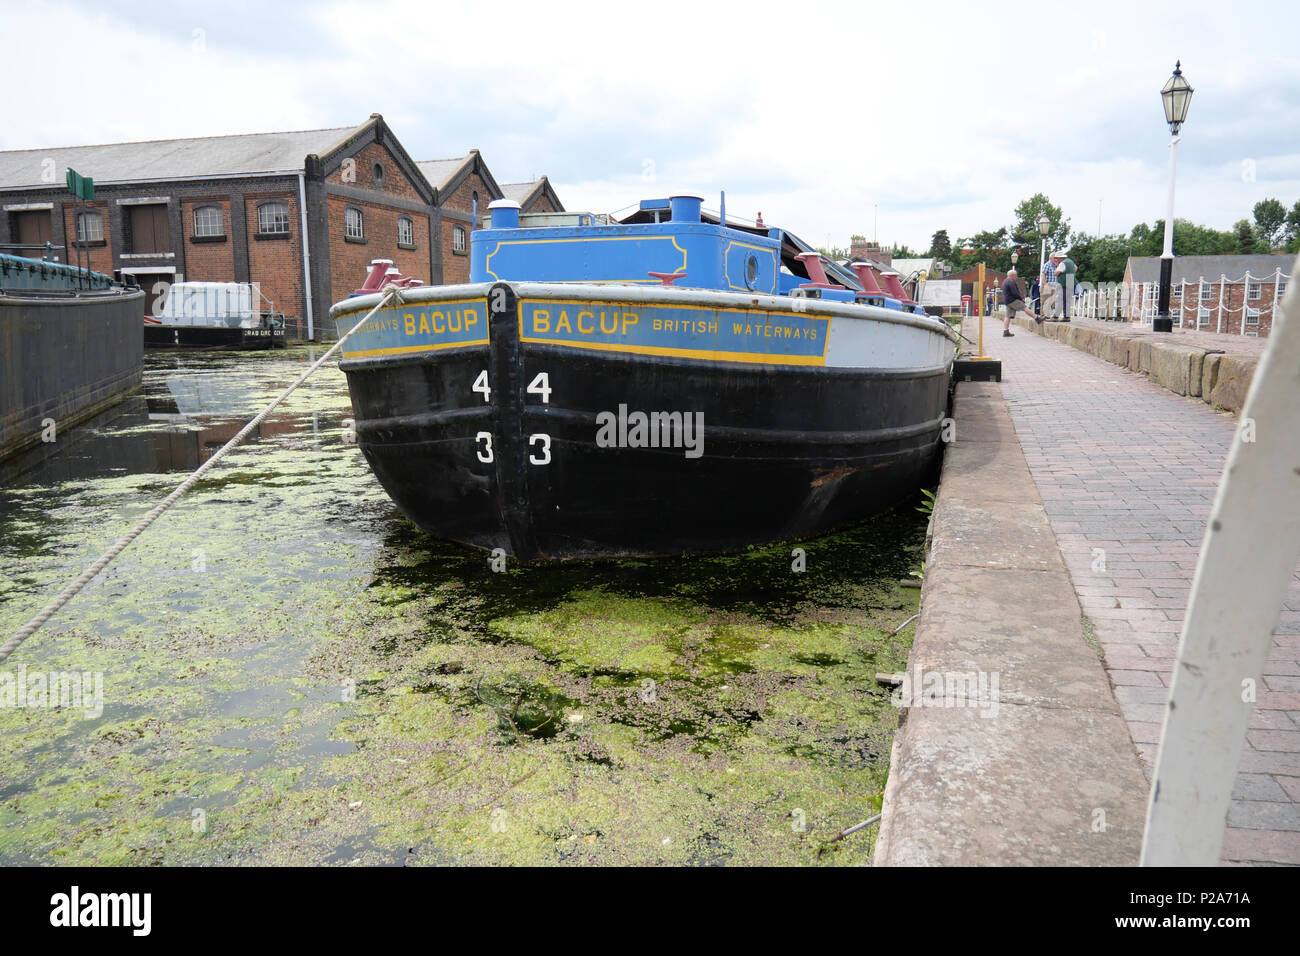 Bacup Barge at the British Waterways Museum. - Stock Image